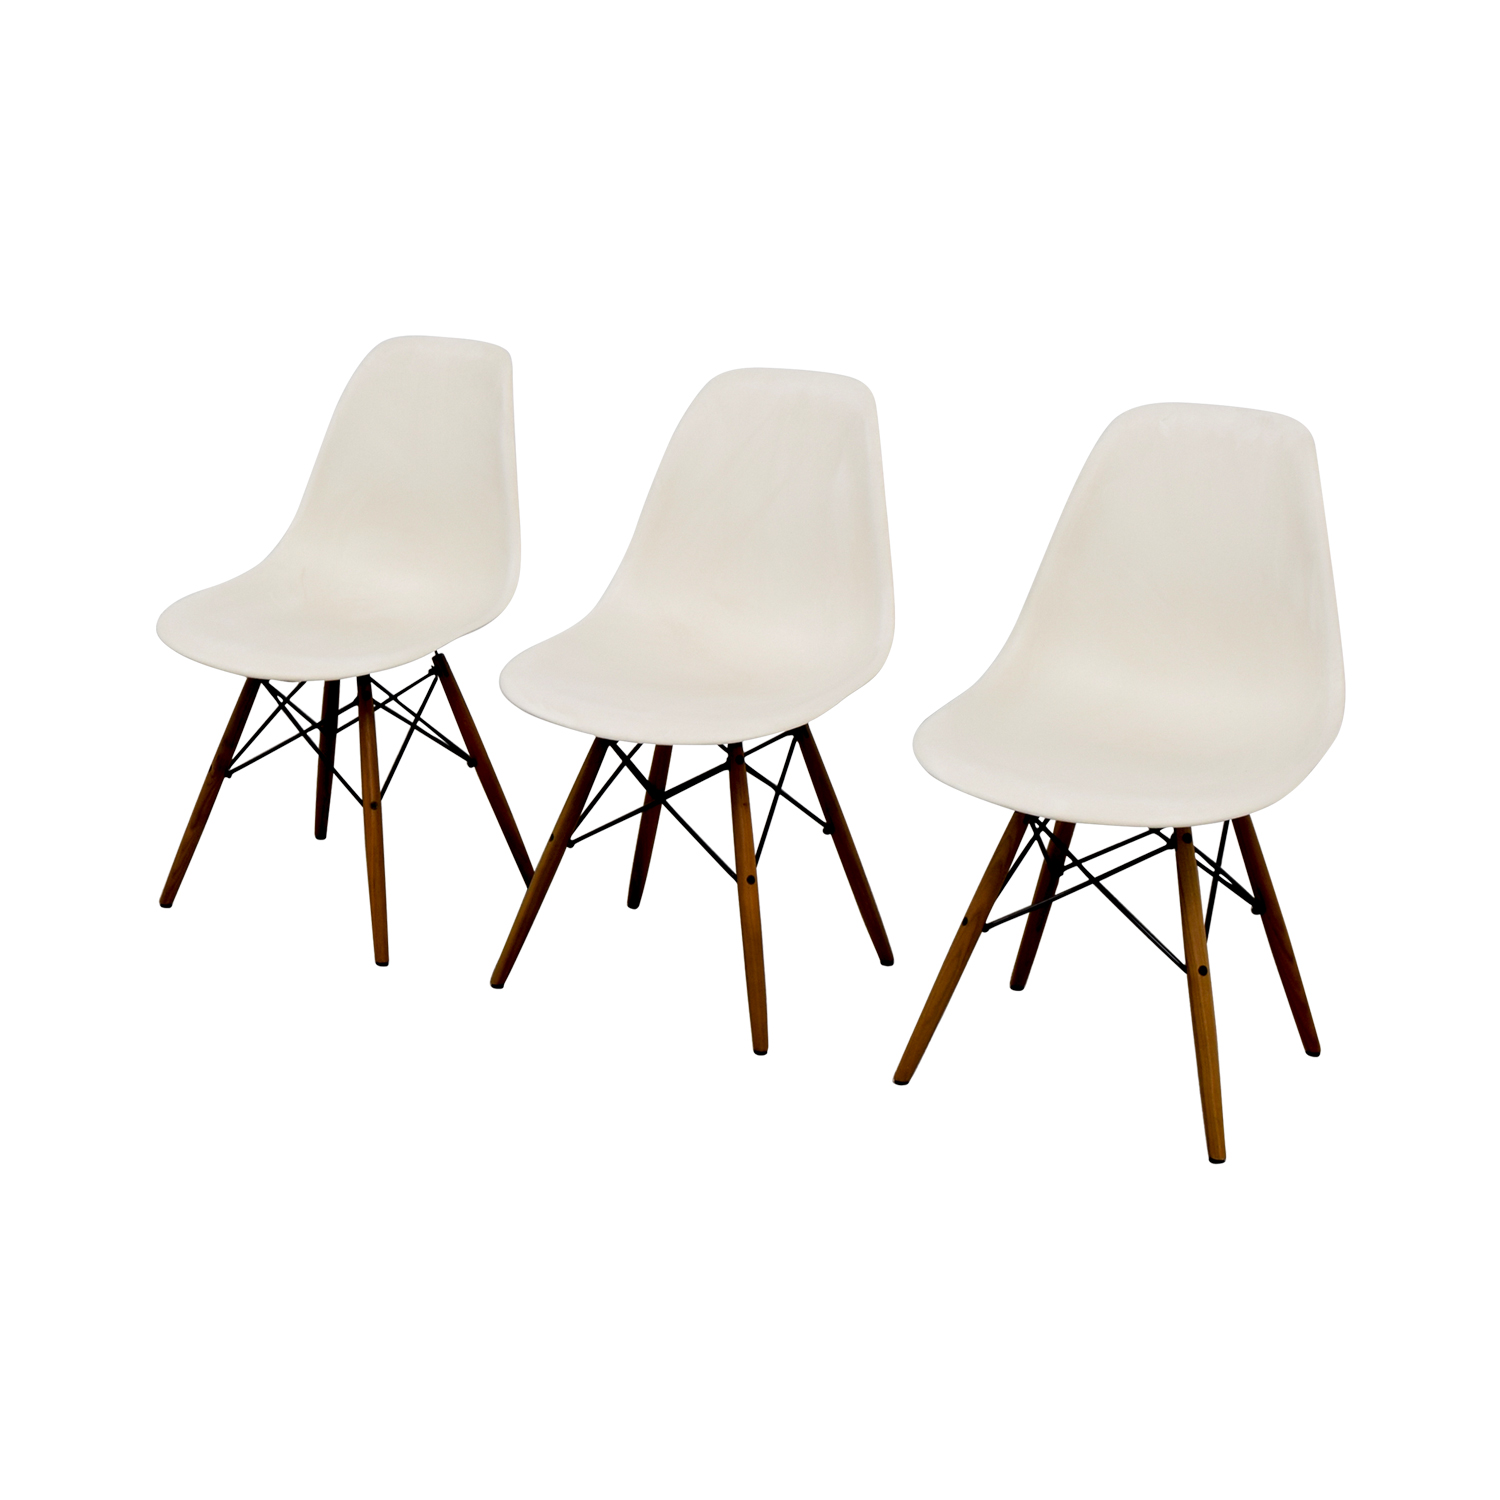 Eames Molded Plastic Side Chairs coupon